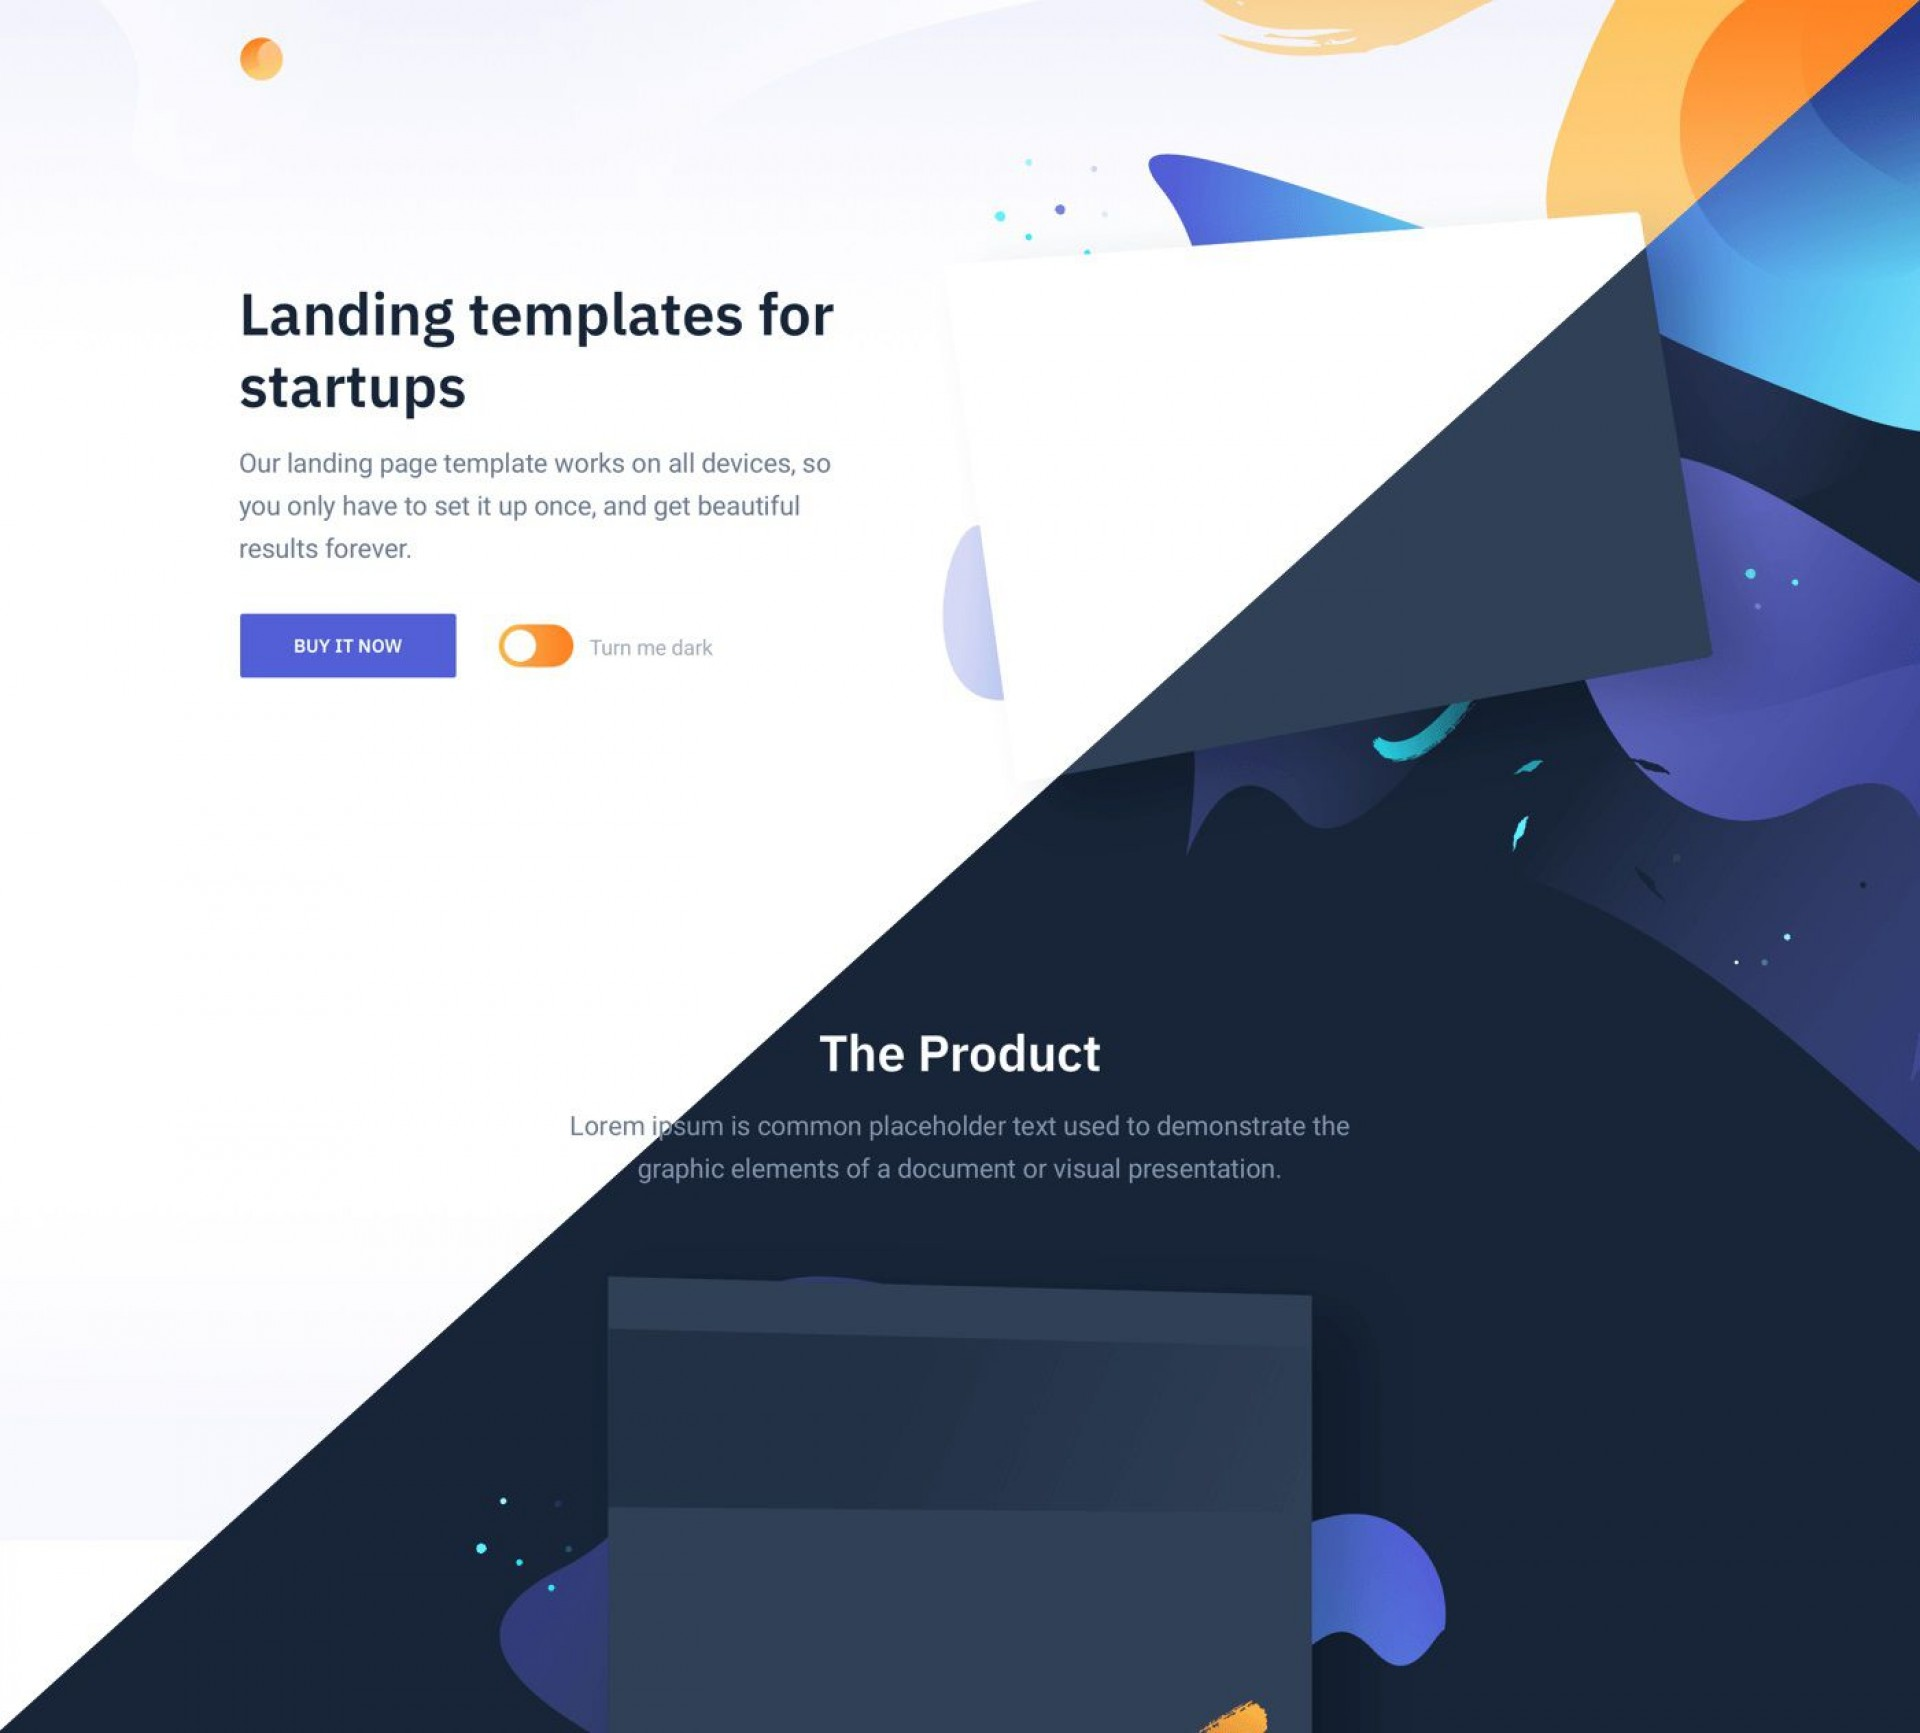 008 Impressive Responsive Landing Page Template Sample  Templates Marketo Free Pardot Html5 Download1920